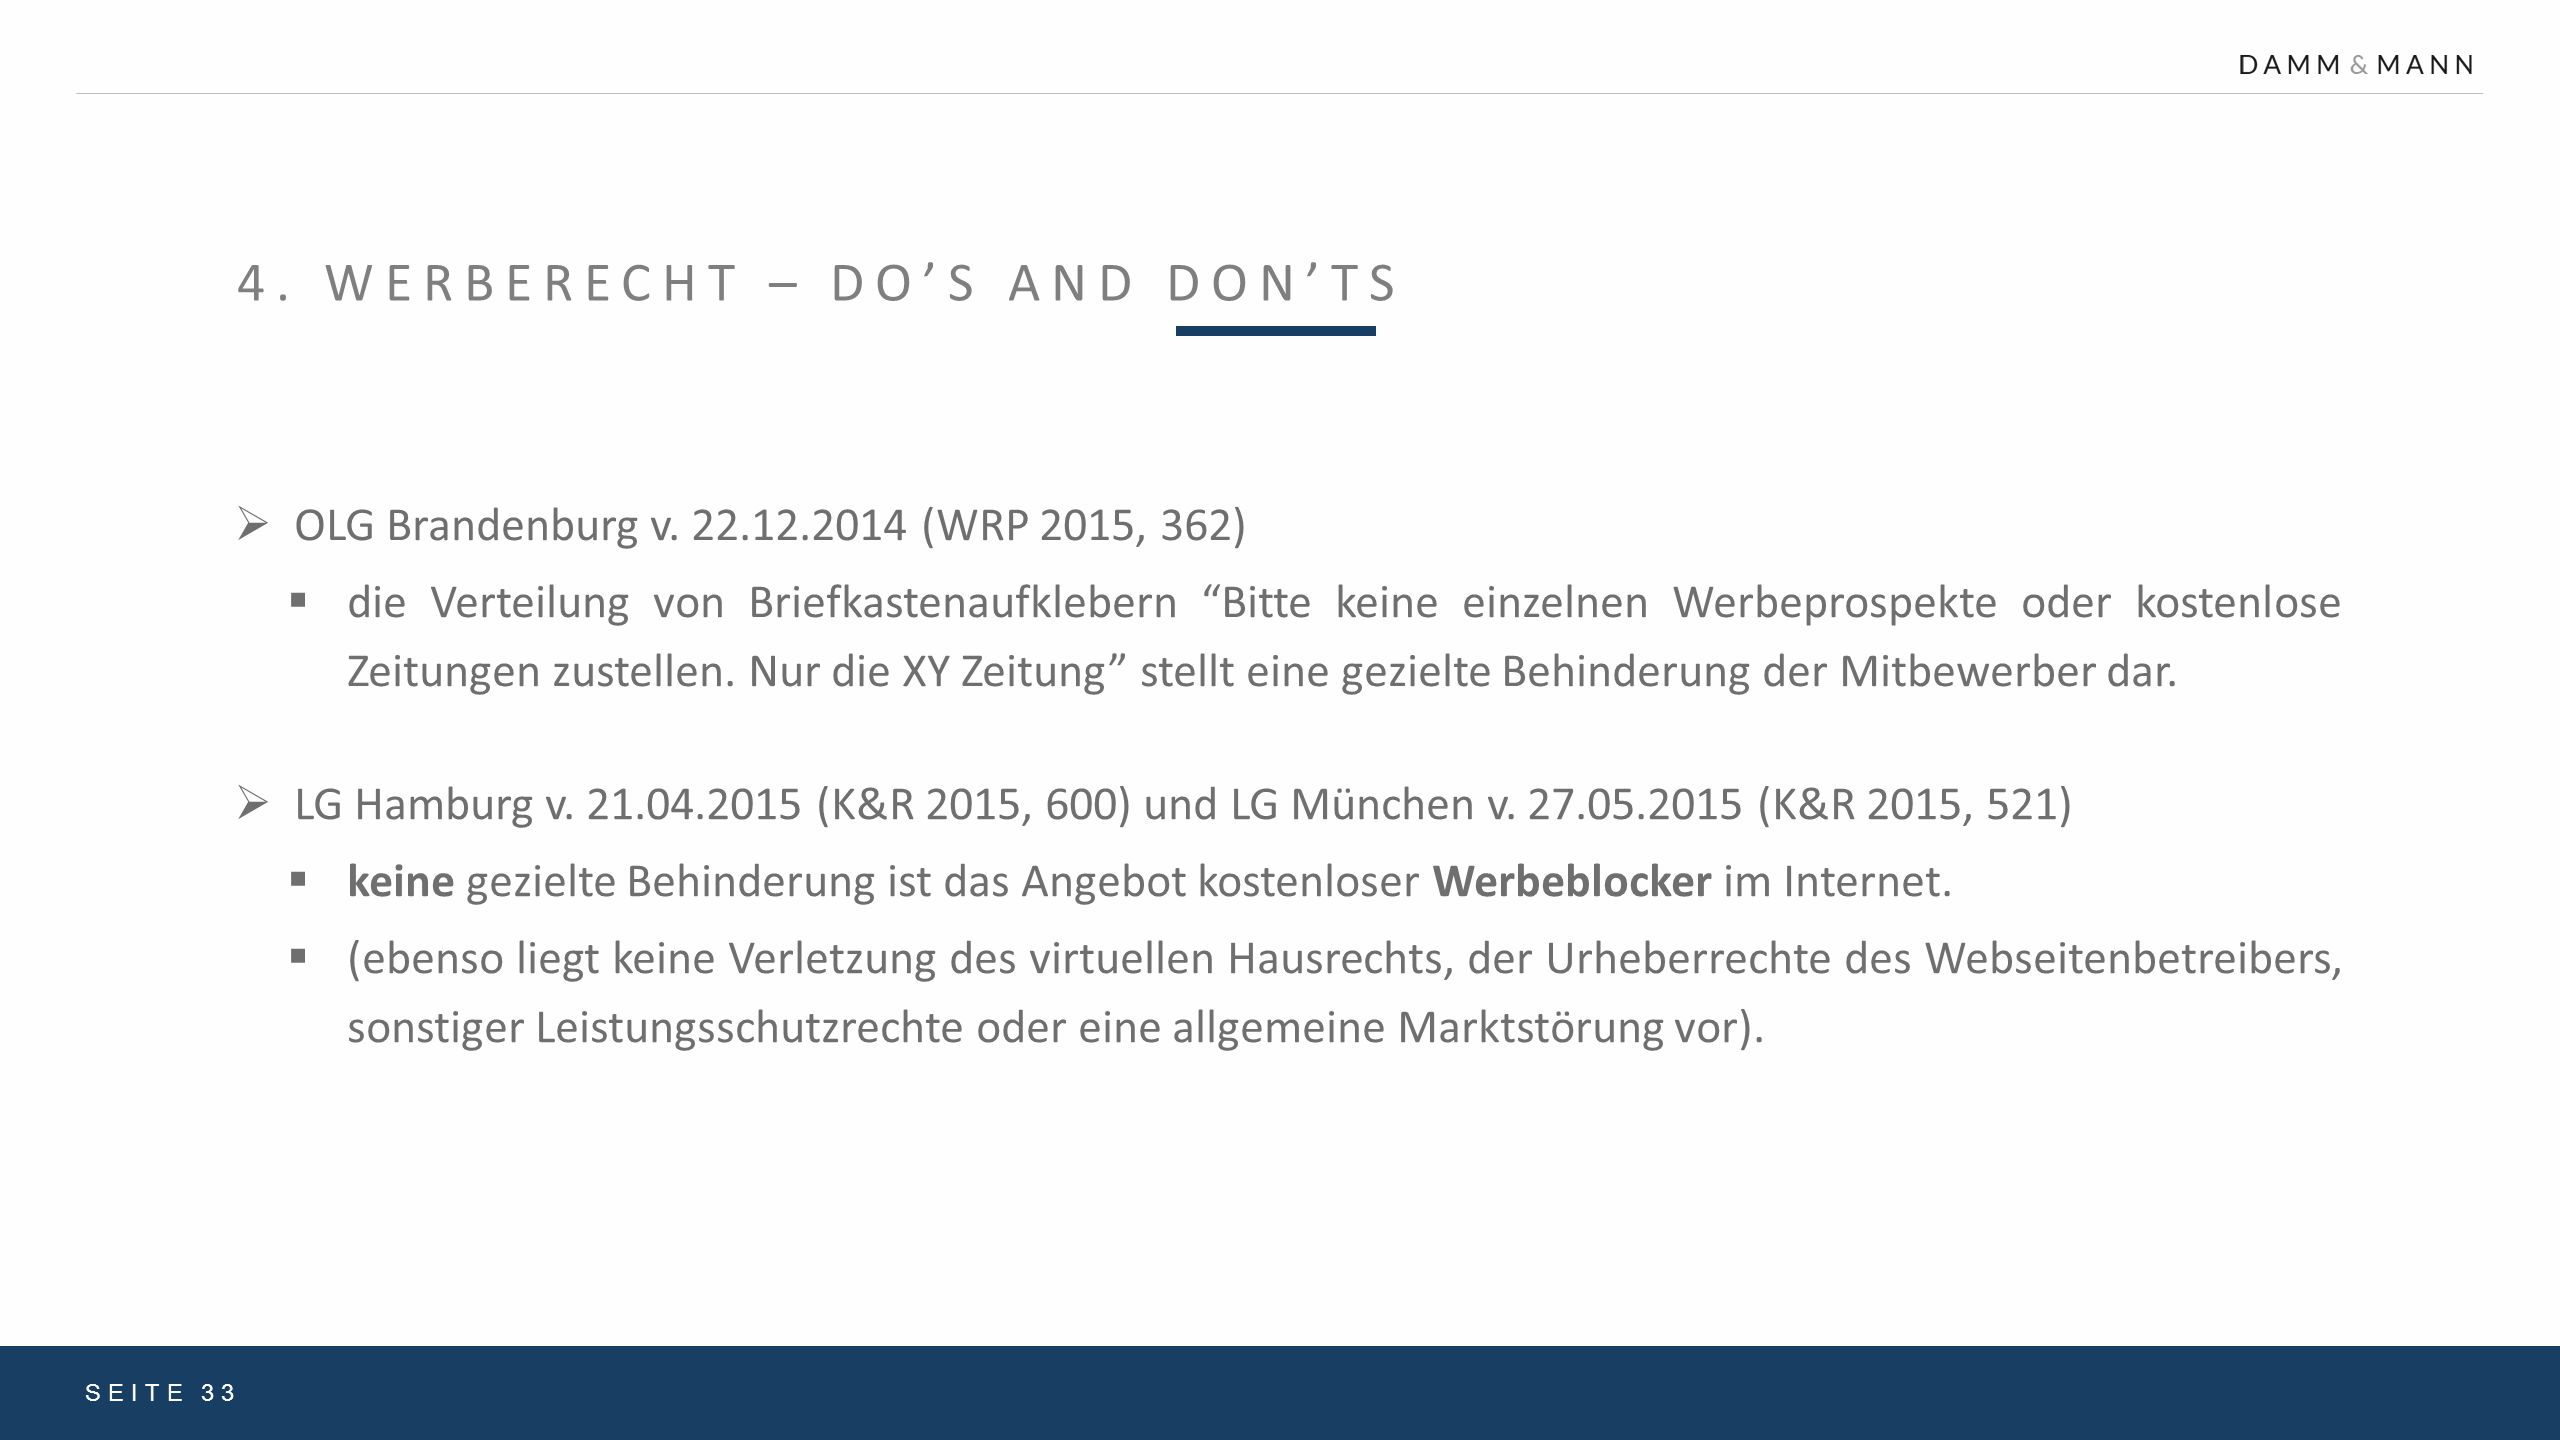 4. Werberecht – Do's and Don'ts